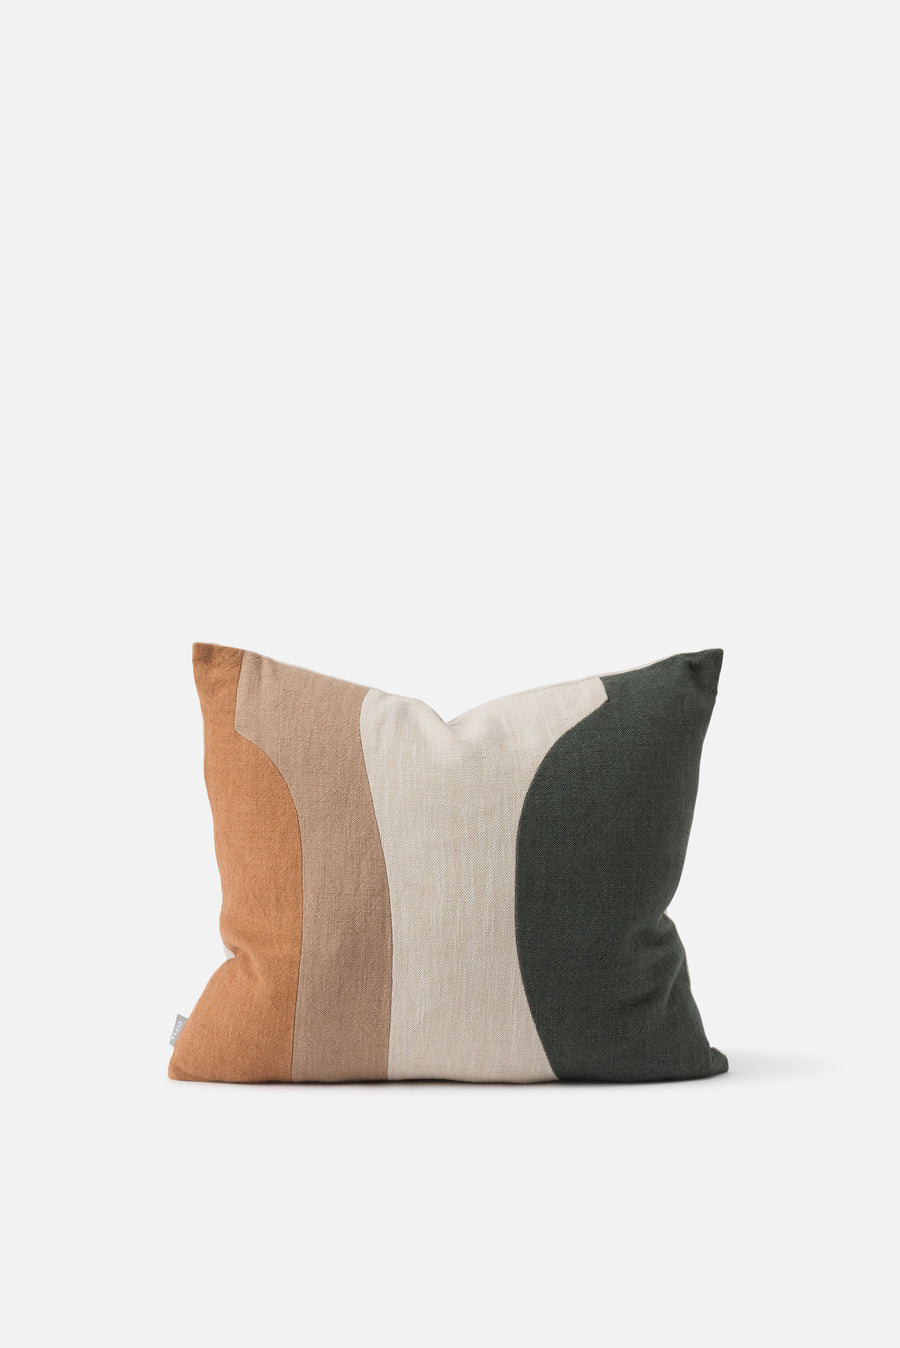 Cushion / Patchwork - Form Study No.1